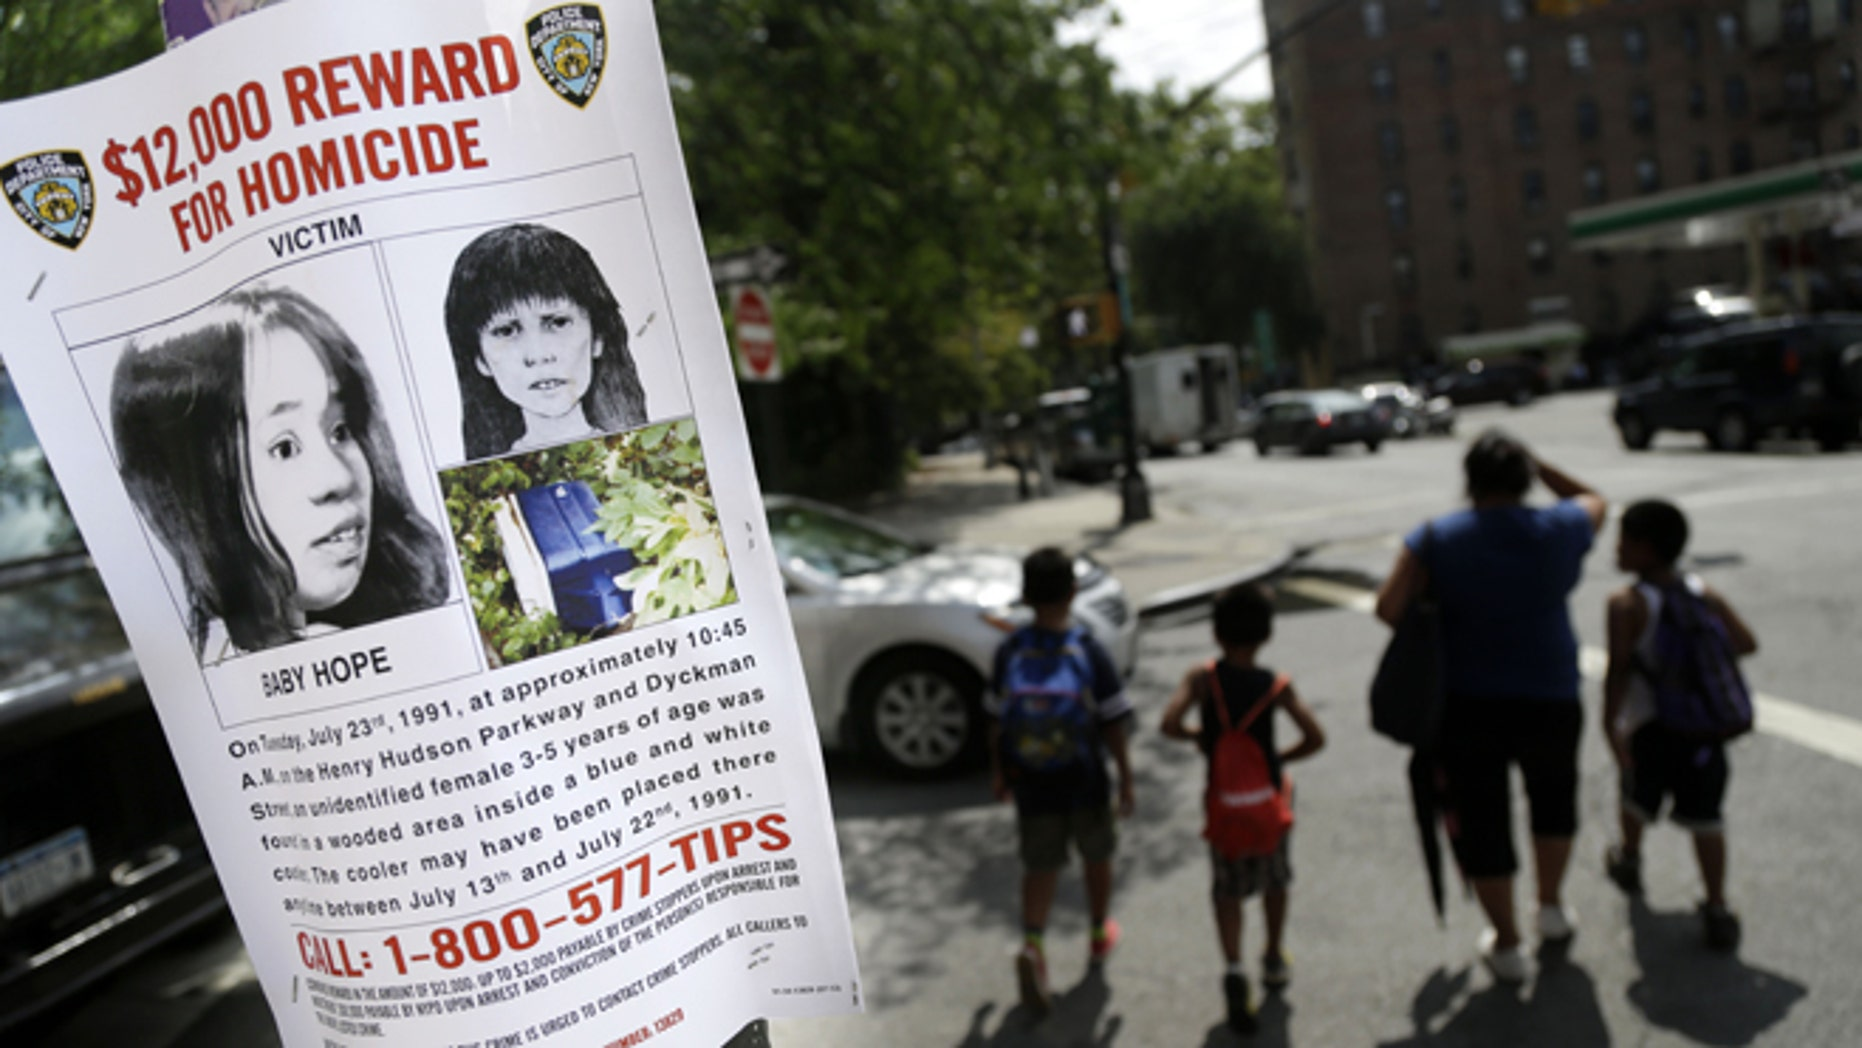 This Tuesday, July 23, 2013, photo shows a poster soliciting information regarding an unidentified body near the site where the body was found in New York.   (AP Photo/Seth Wenig)